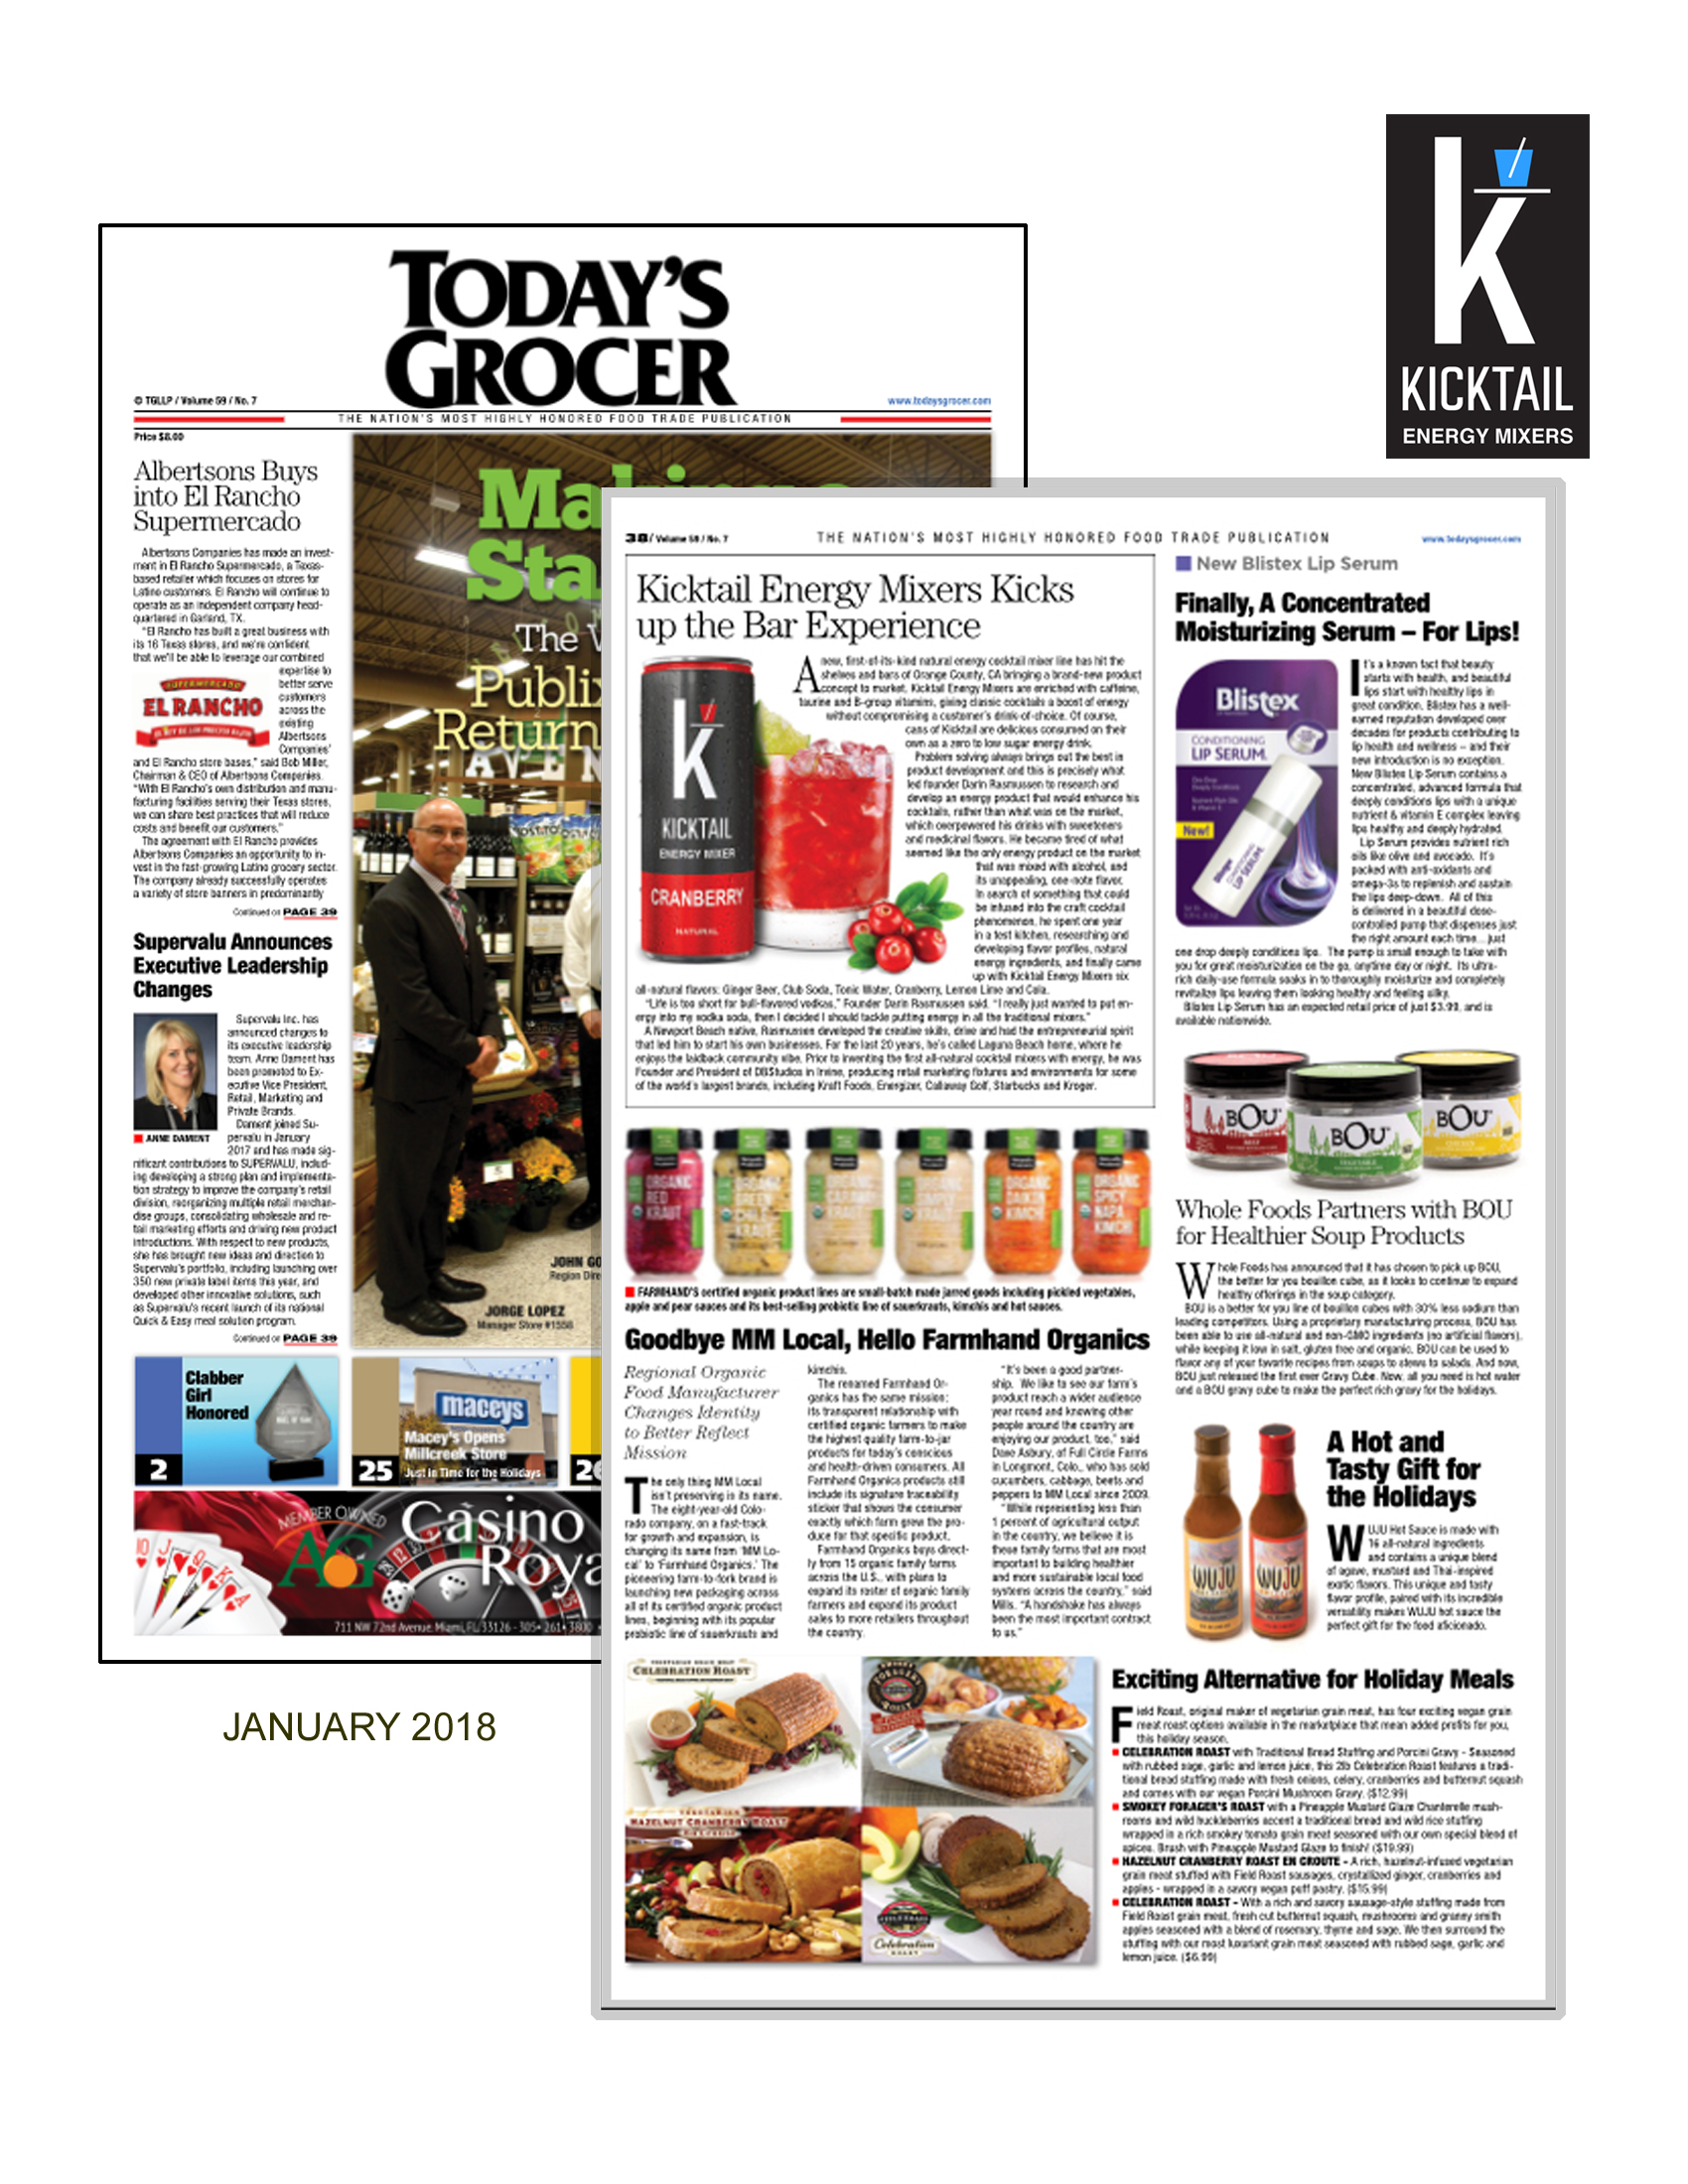 TodaysGrocer_Jan2018.jpg